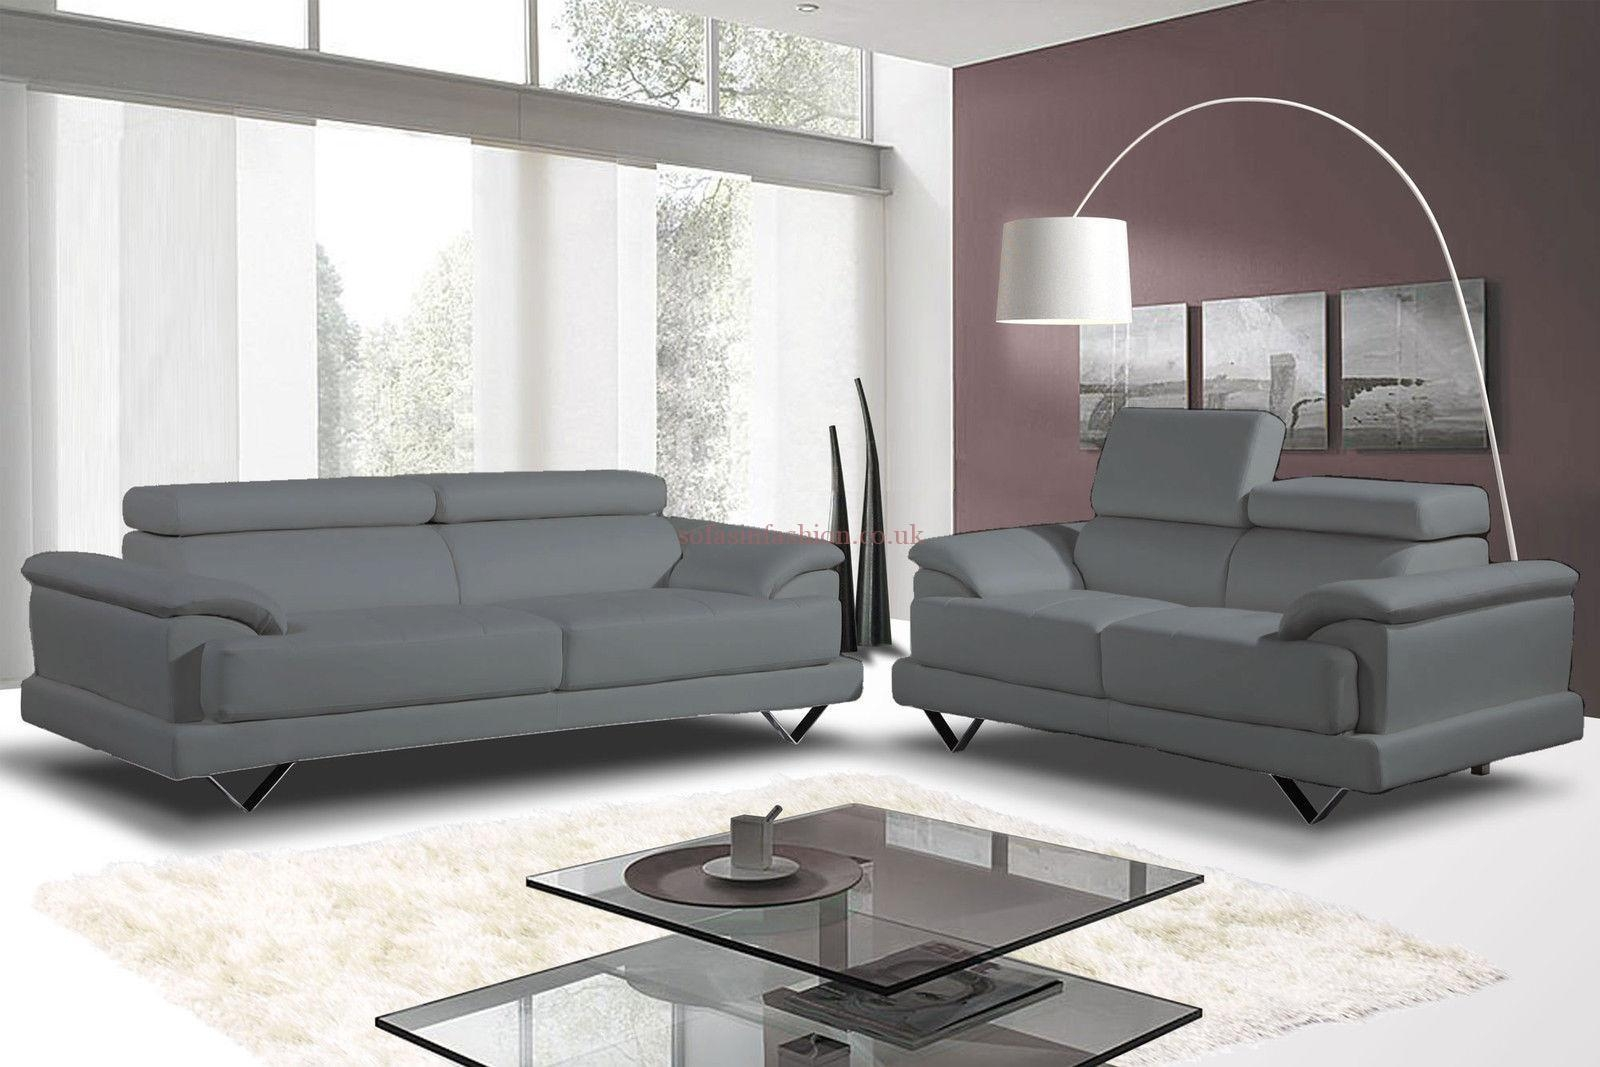 Cheap Gray Sofa Sets | Tehranmix Decoration Intended For Grey Sofa Chairs (View 2 of 20)